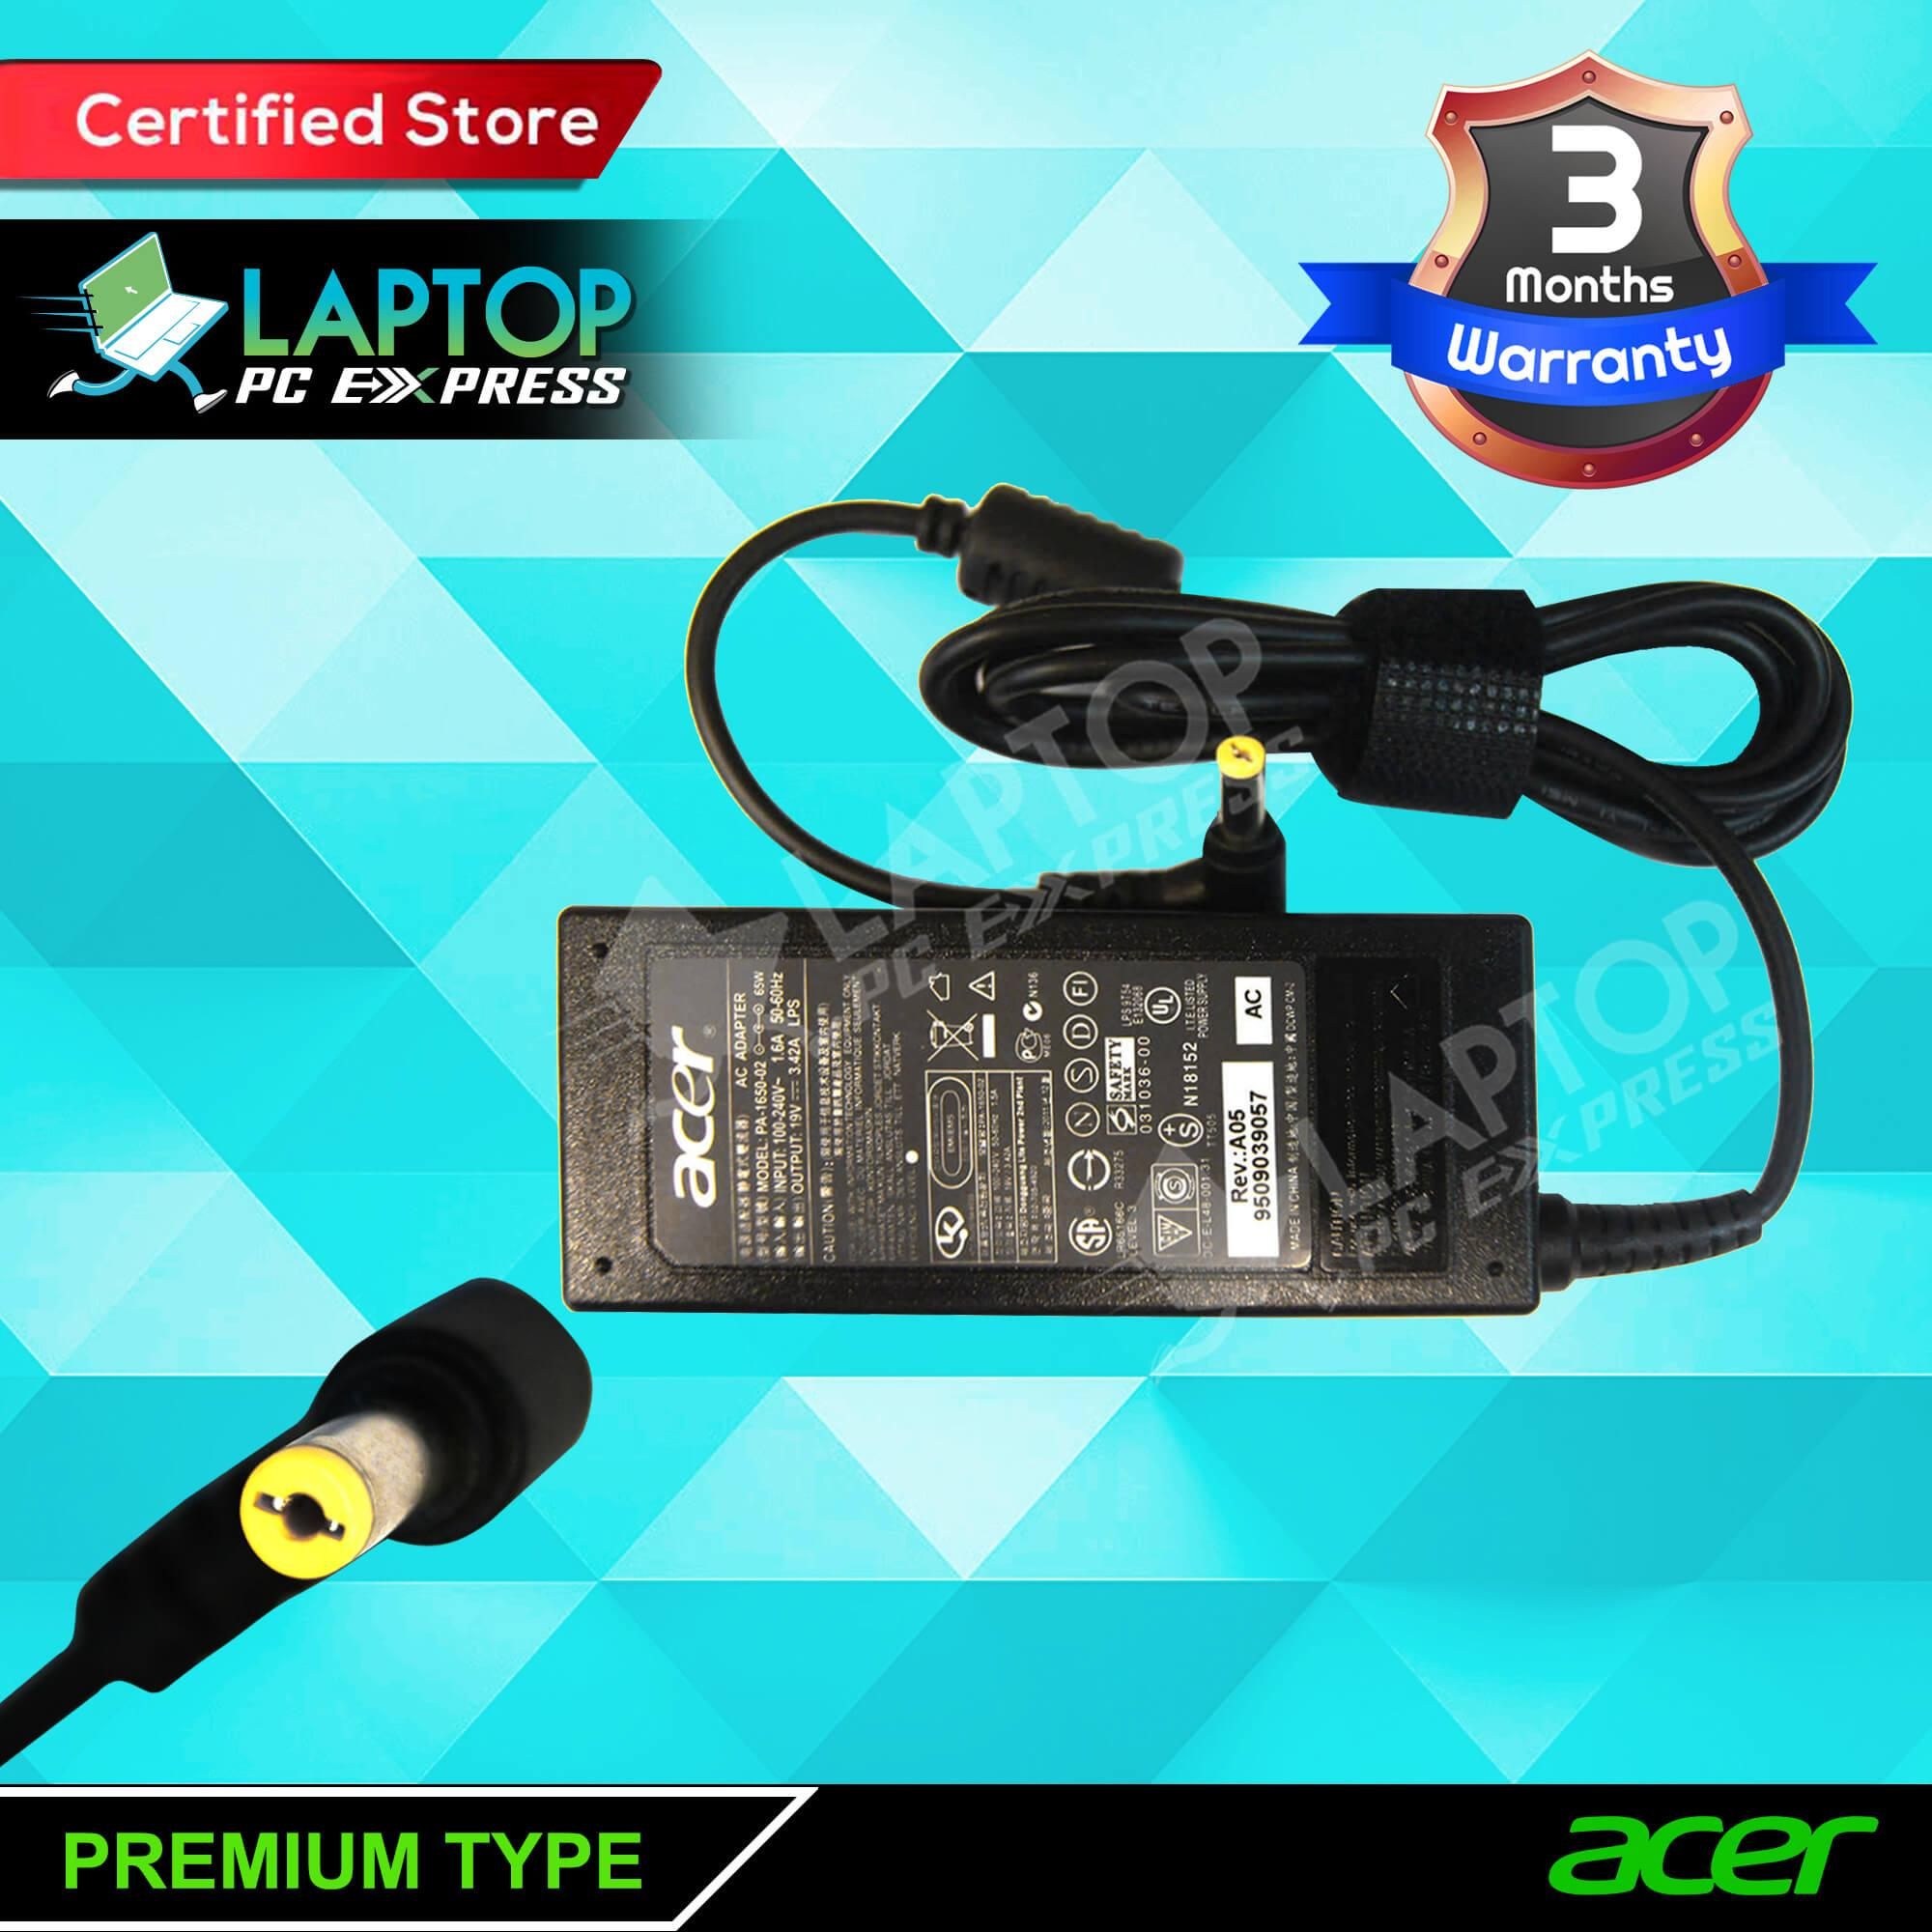 Acer Computer Accessories Philippines Pc For Sale Adaptor Charger Laptop Aspire 4739 4738 4741 4750 4736 4752 4740 Notebook Adapter 19v 342a 65w E5 Series 575 575g 722g